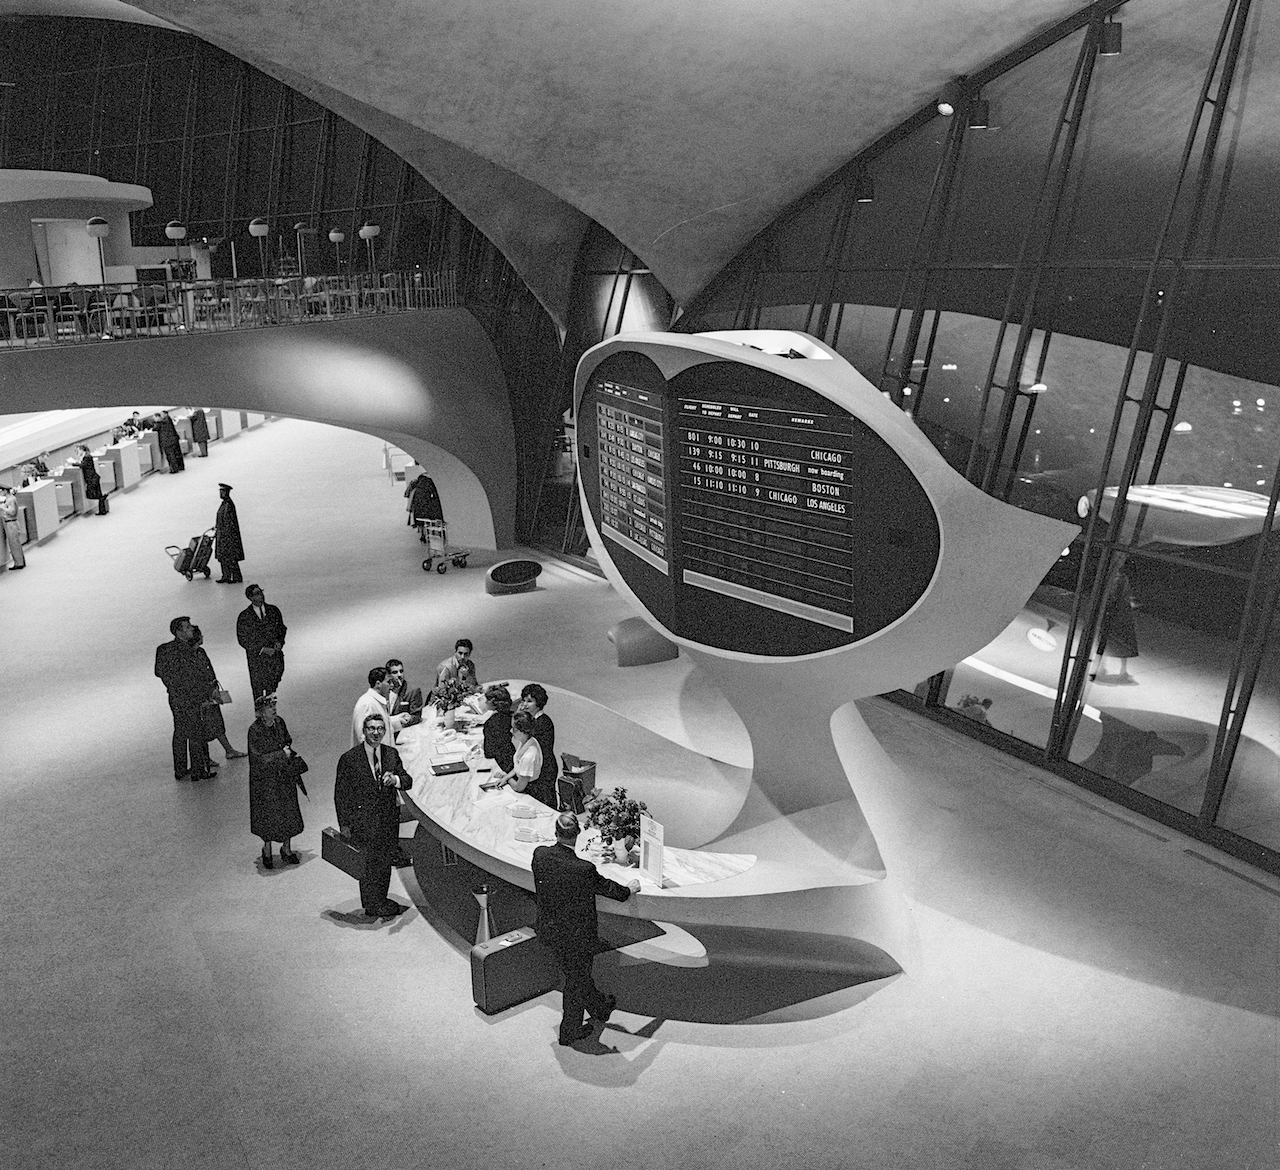 Arrivals and departures board with information desk in the TWA Flight Center (1962) (© Library of Congress, Prints & Photographs Division, Balthazar Korab Archive at the Library of Congress)